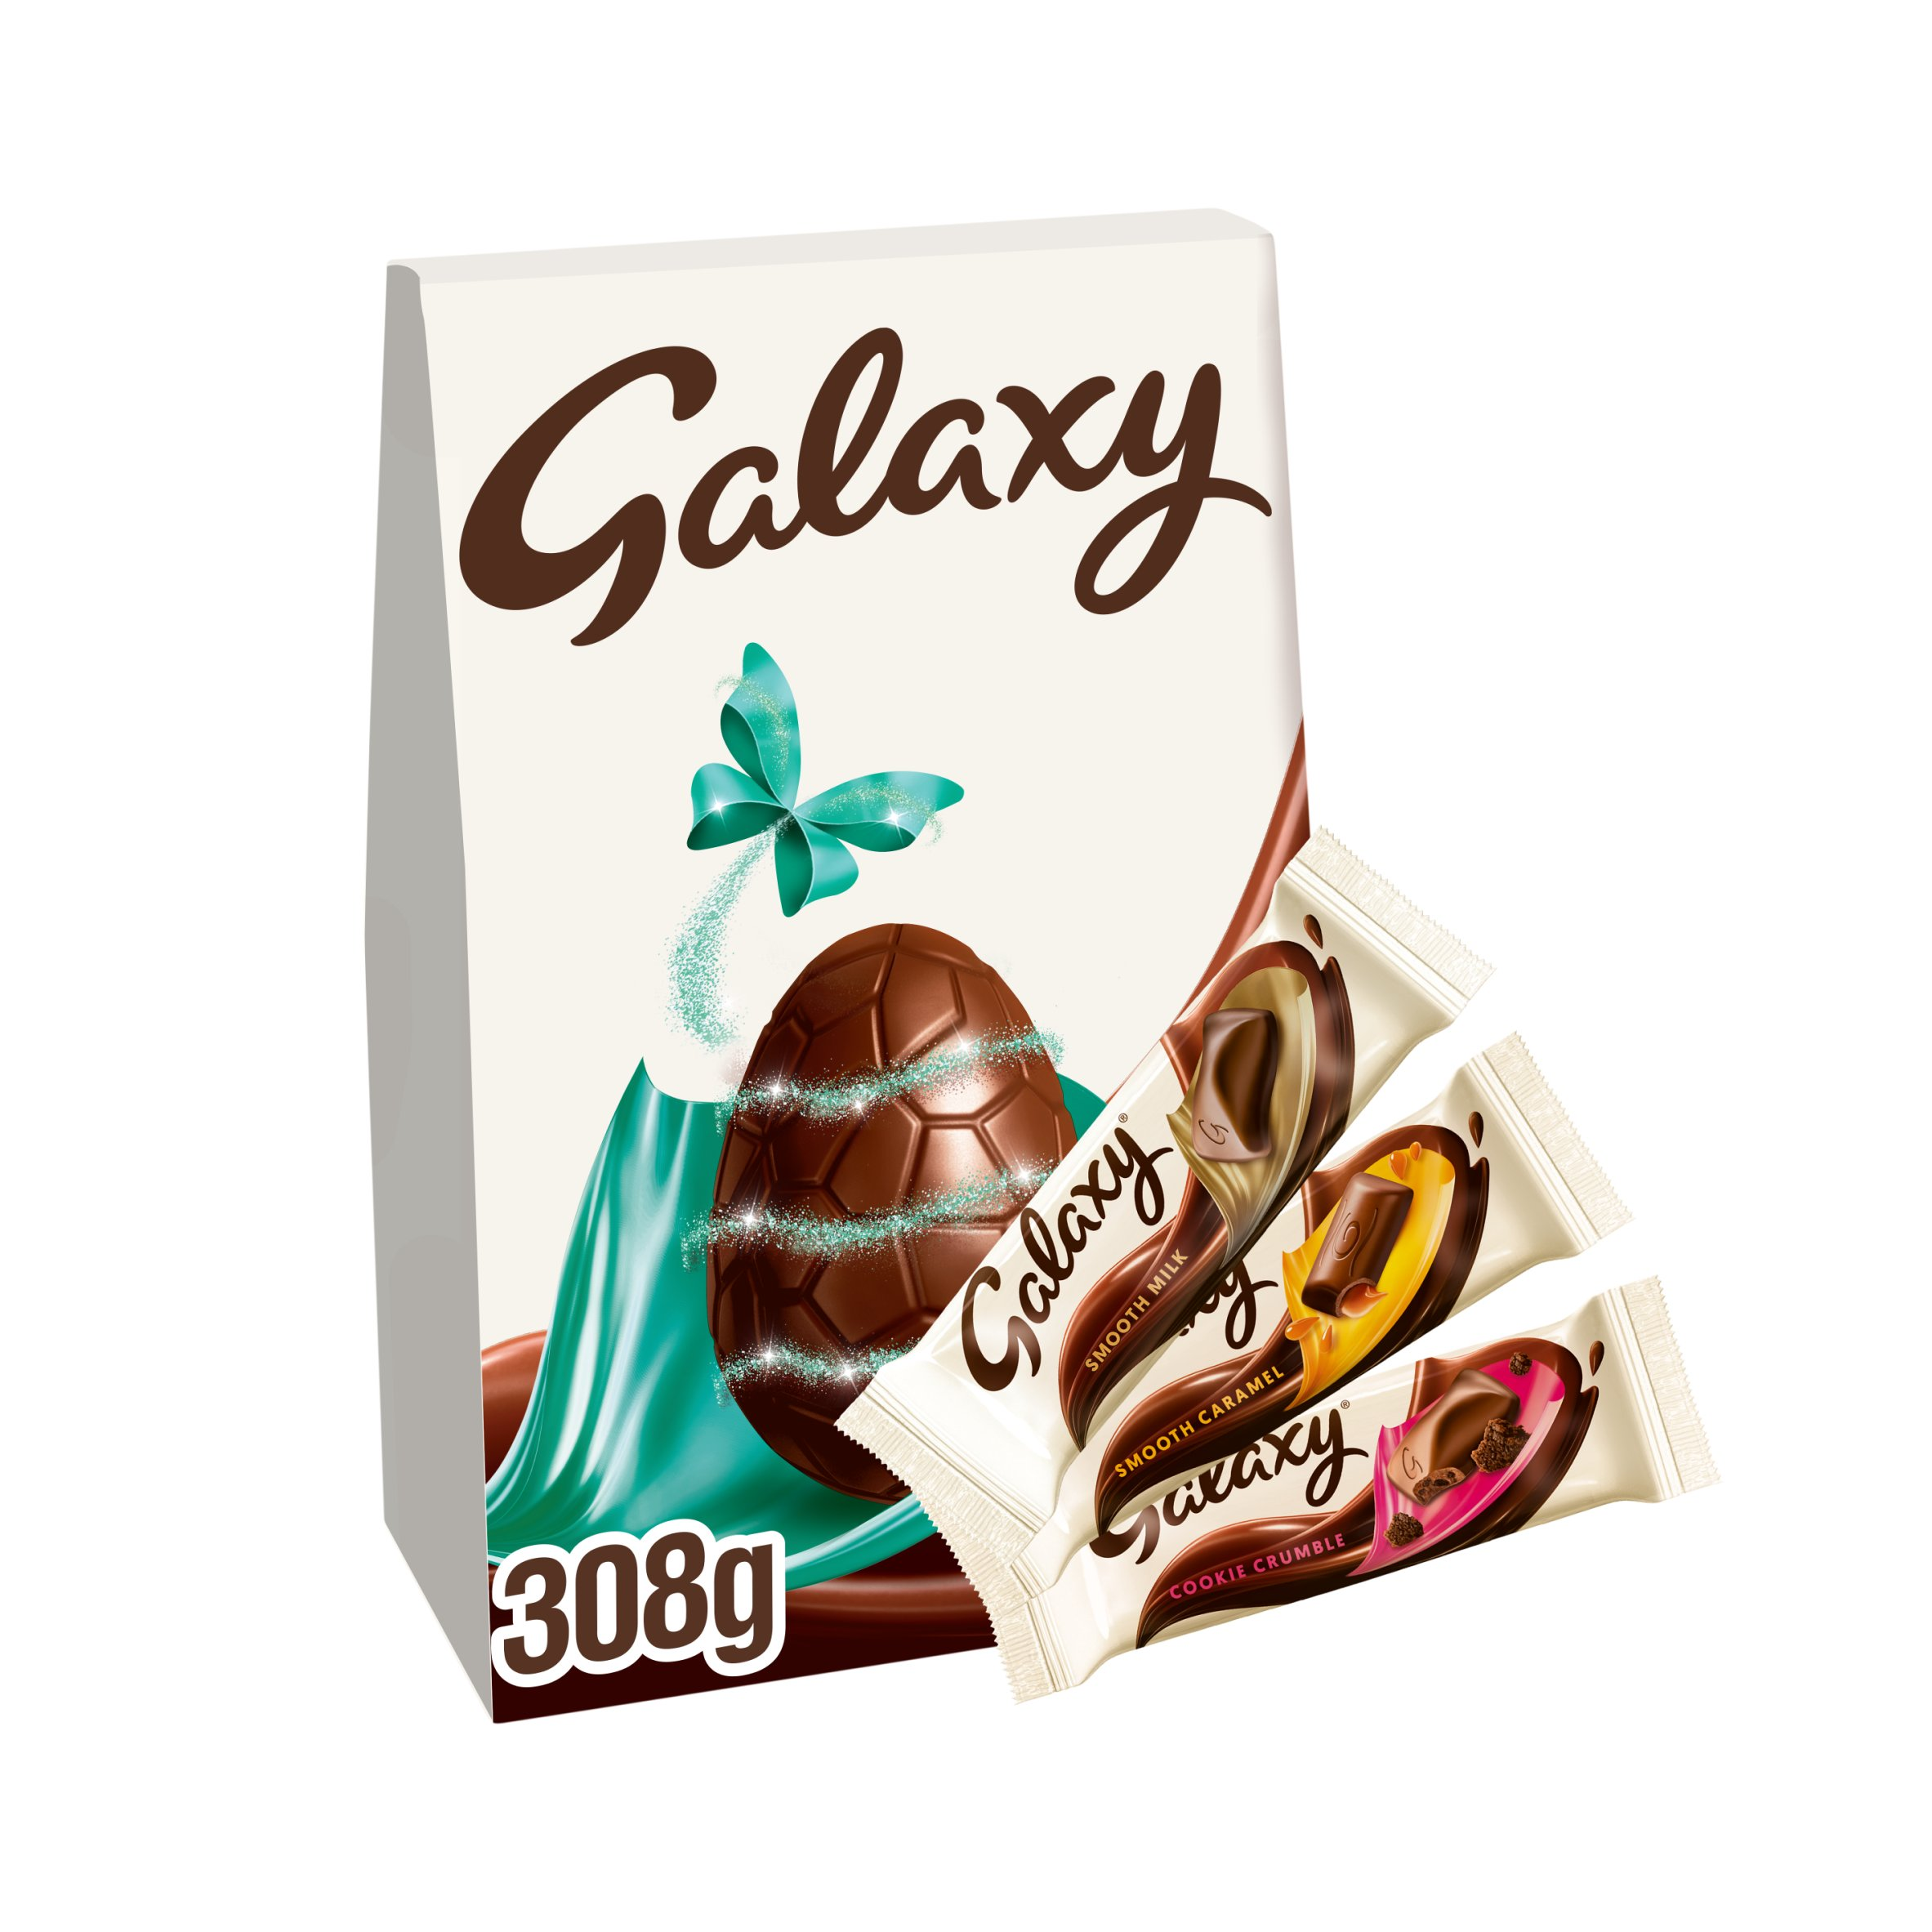 Galaxy Milk Chocolate Indulgent Collection Easter Egg 308G